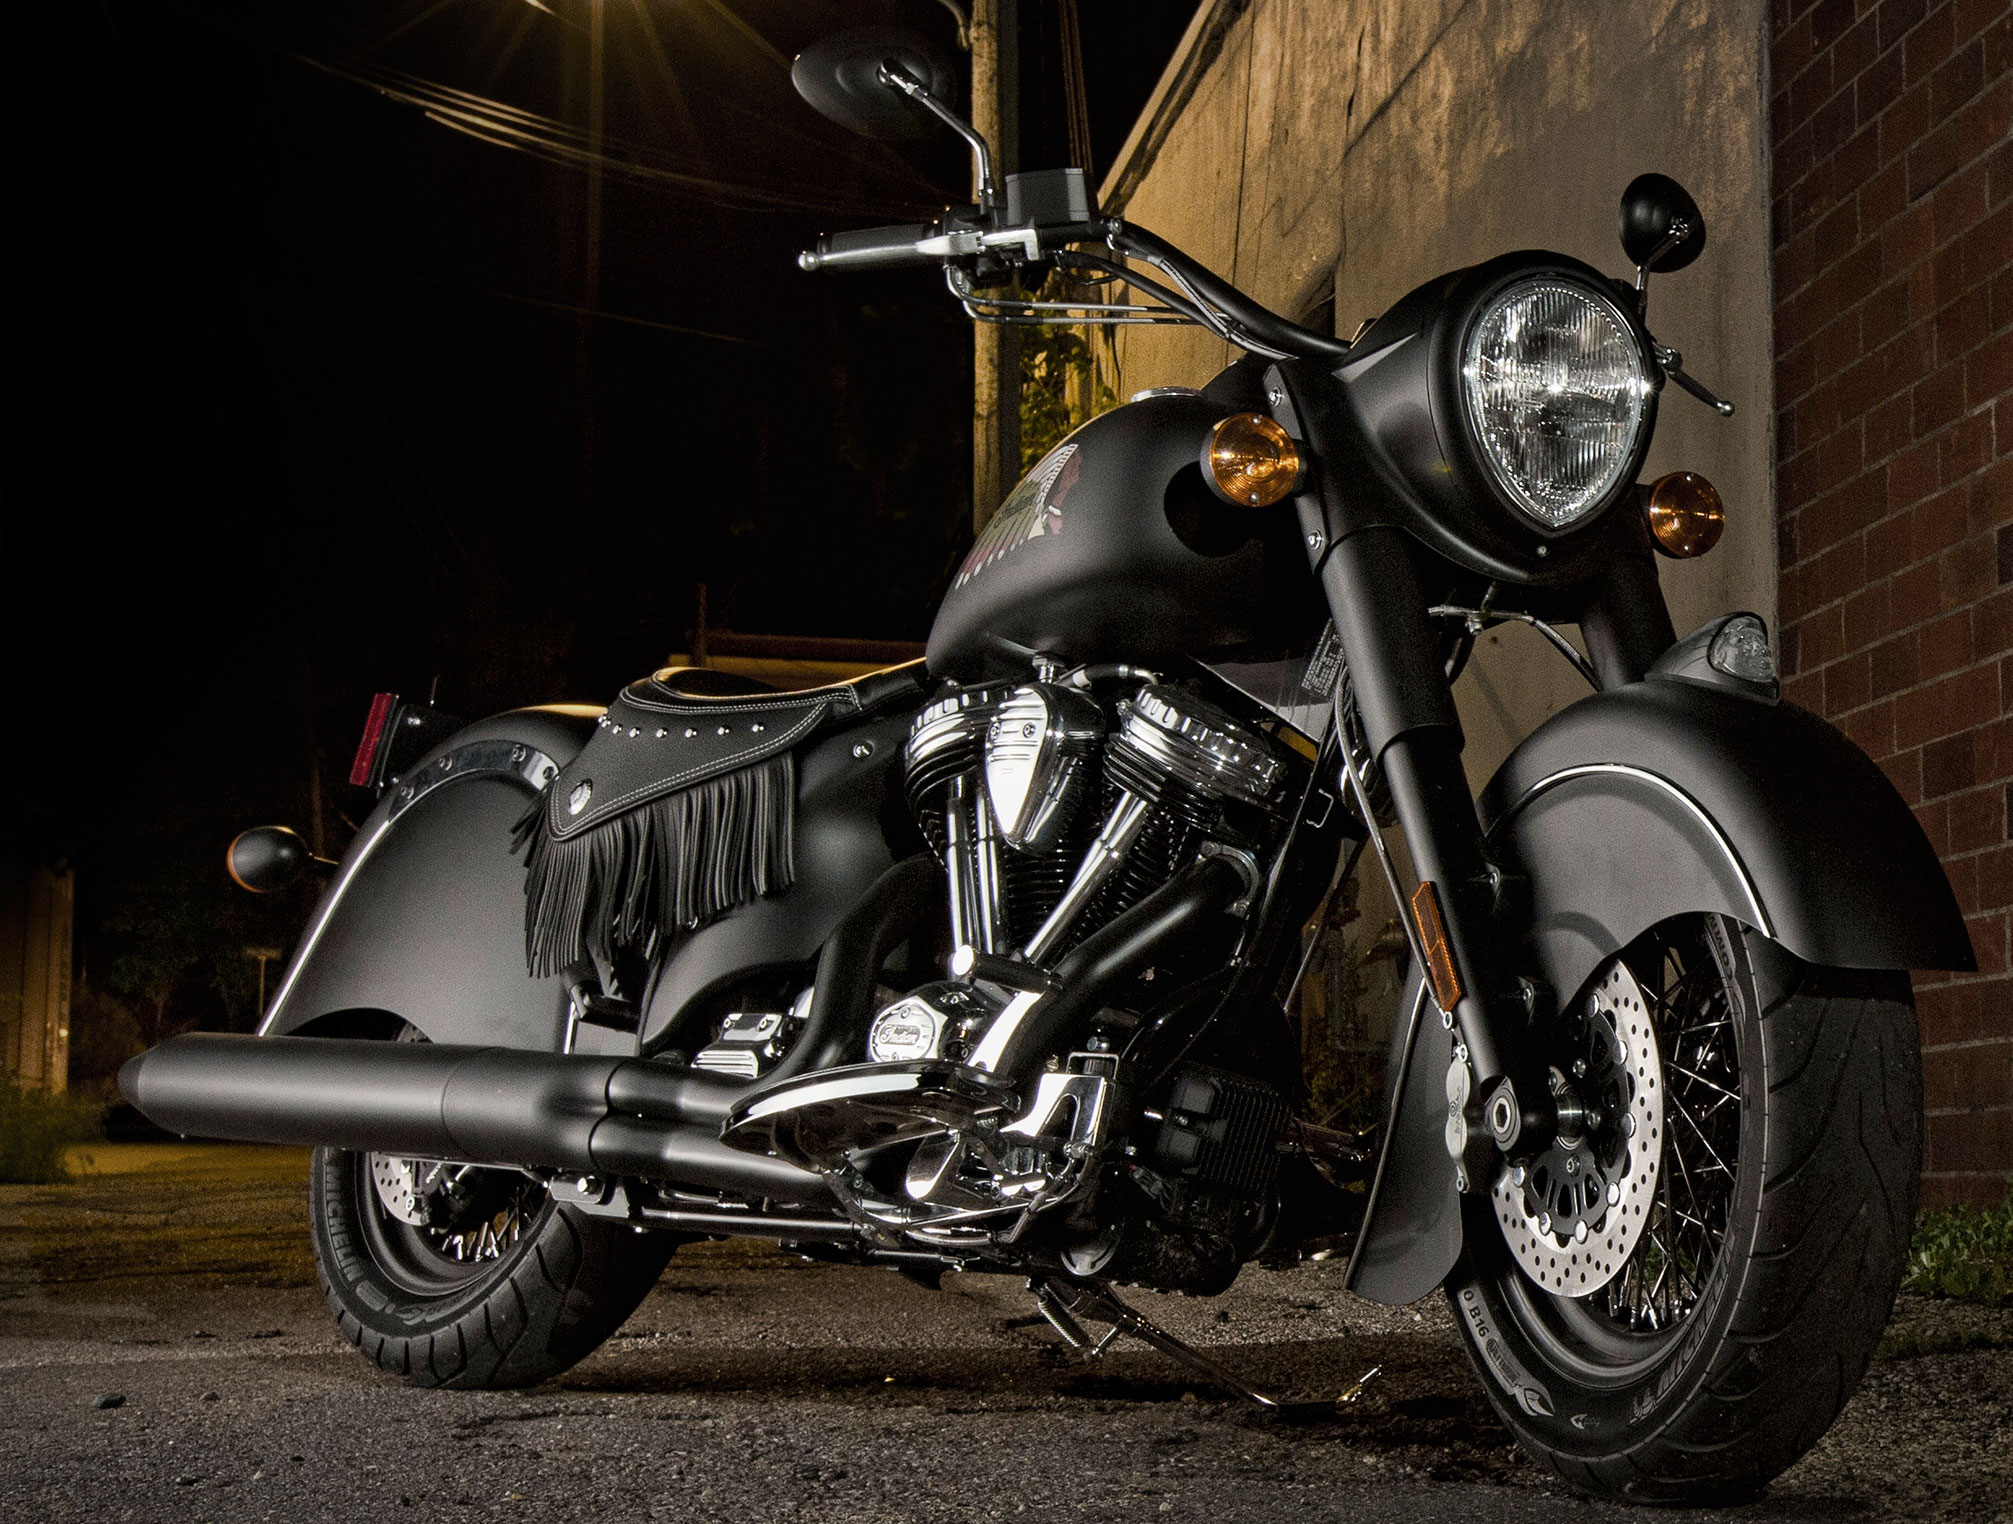 Meet indian motorcycles first model of 2016 indian chief dark - 2016 Indian Chief Dark Horse Makes Appearance In